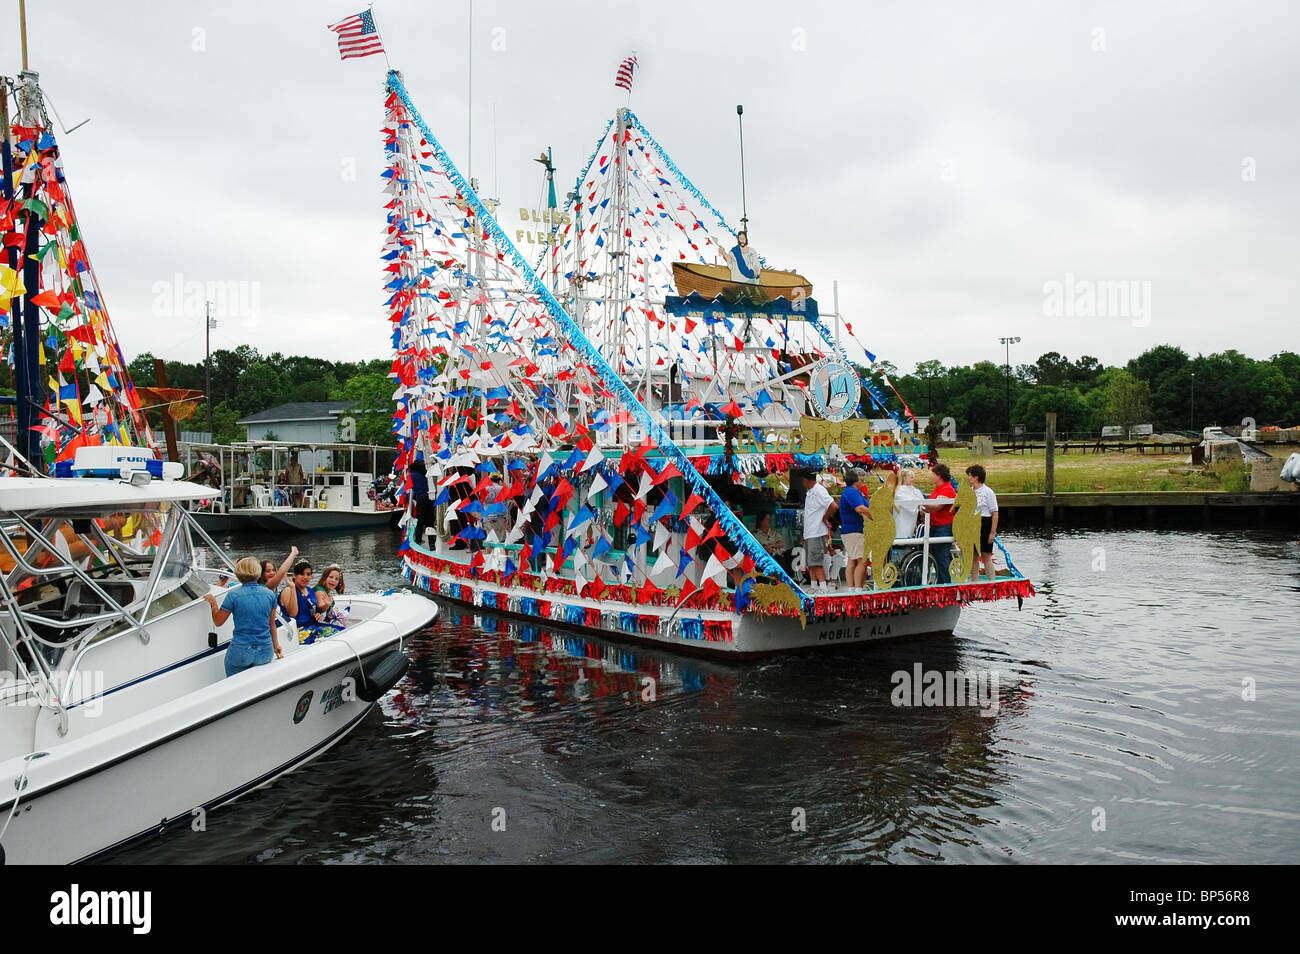 Bayou La Batre Stock Photos Images Alamy Annual Blessing Of The Fleet At Alabama Forrest Gump Fame